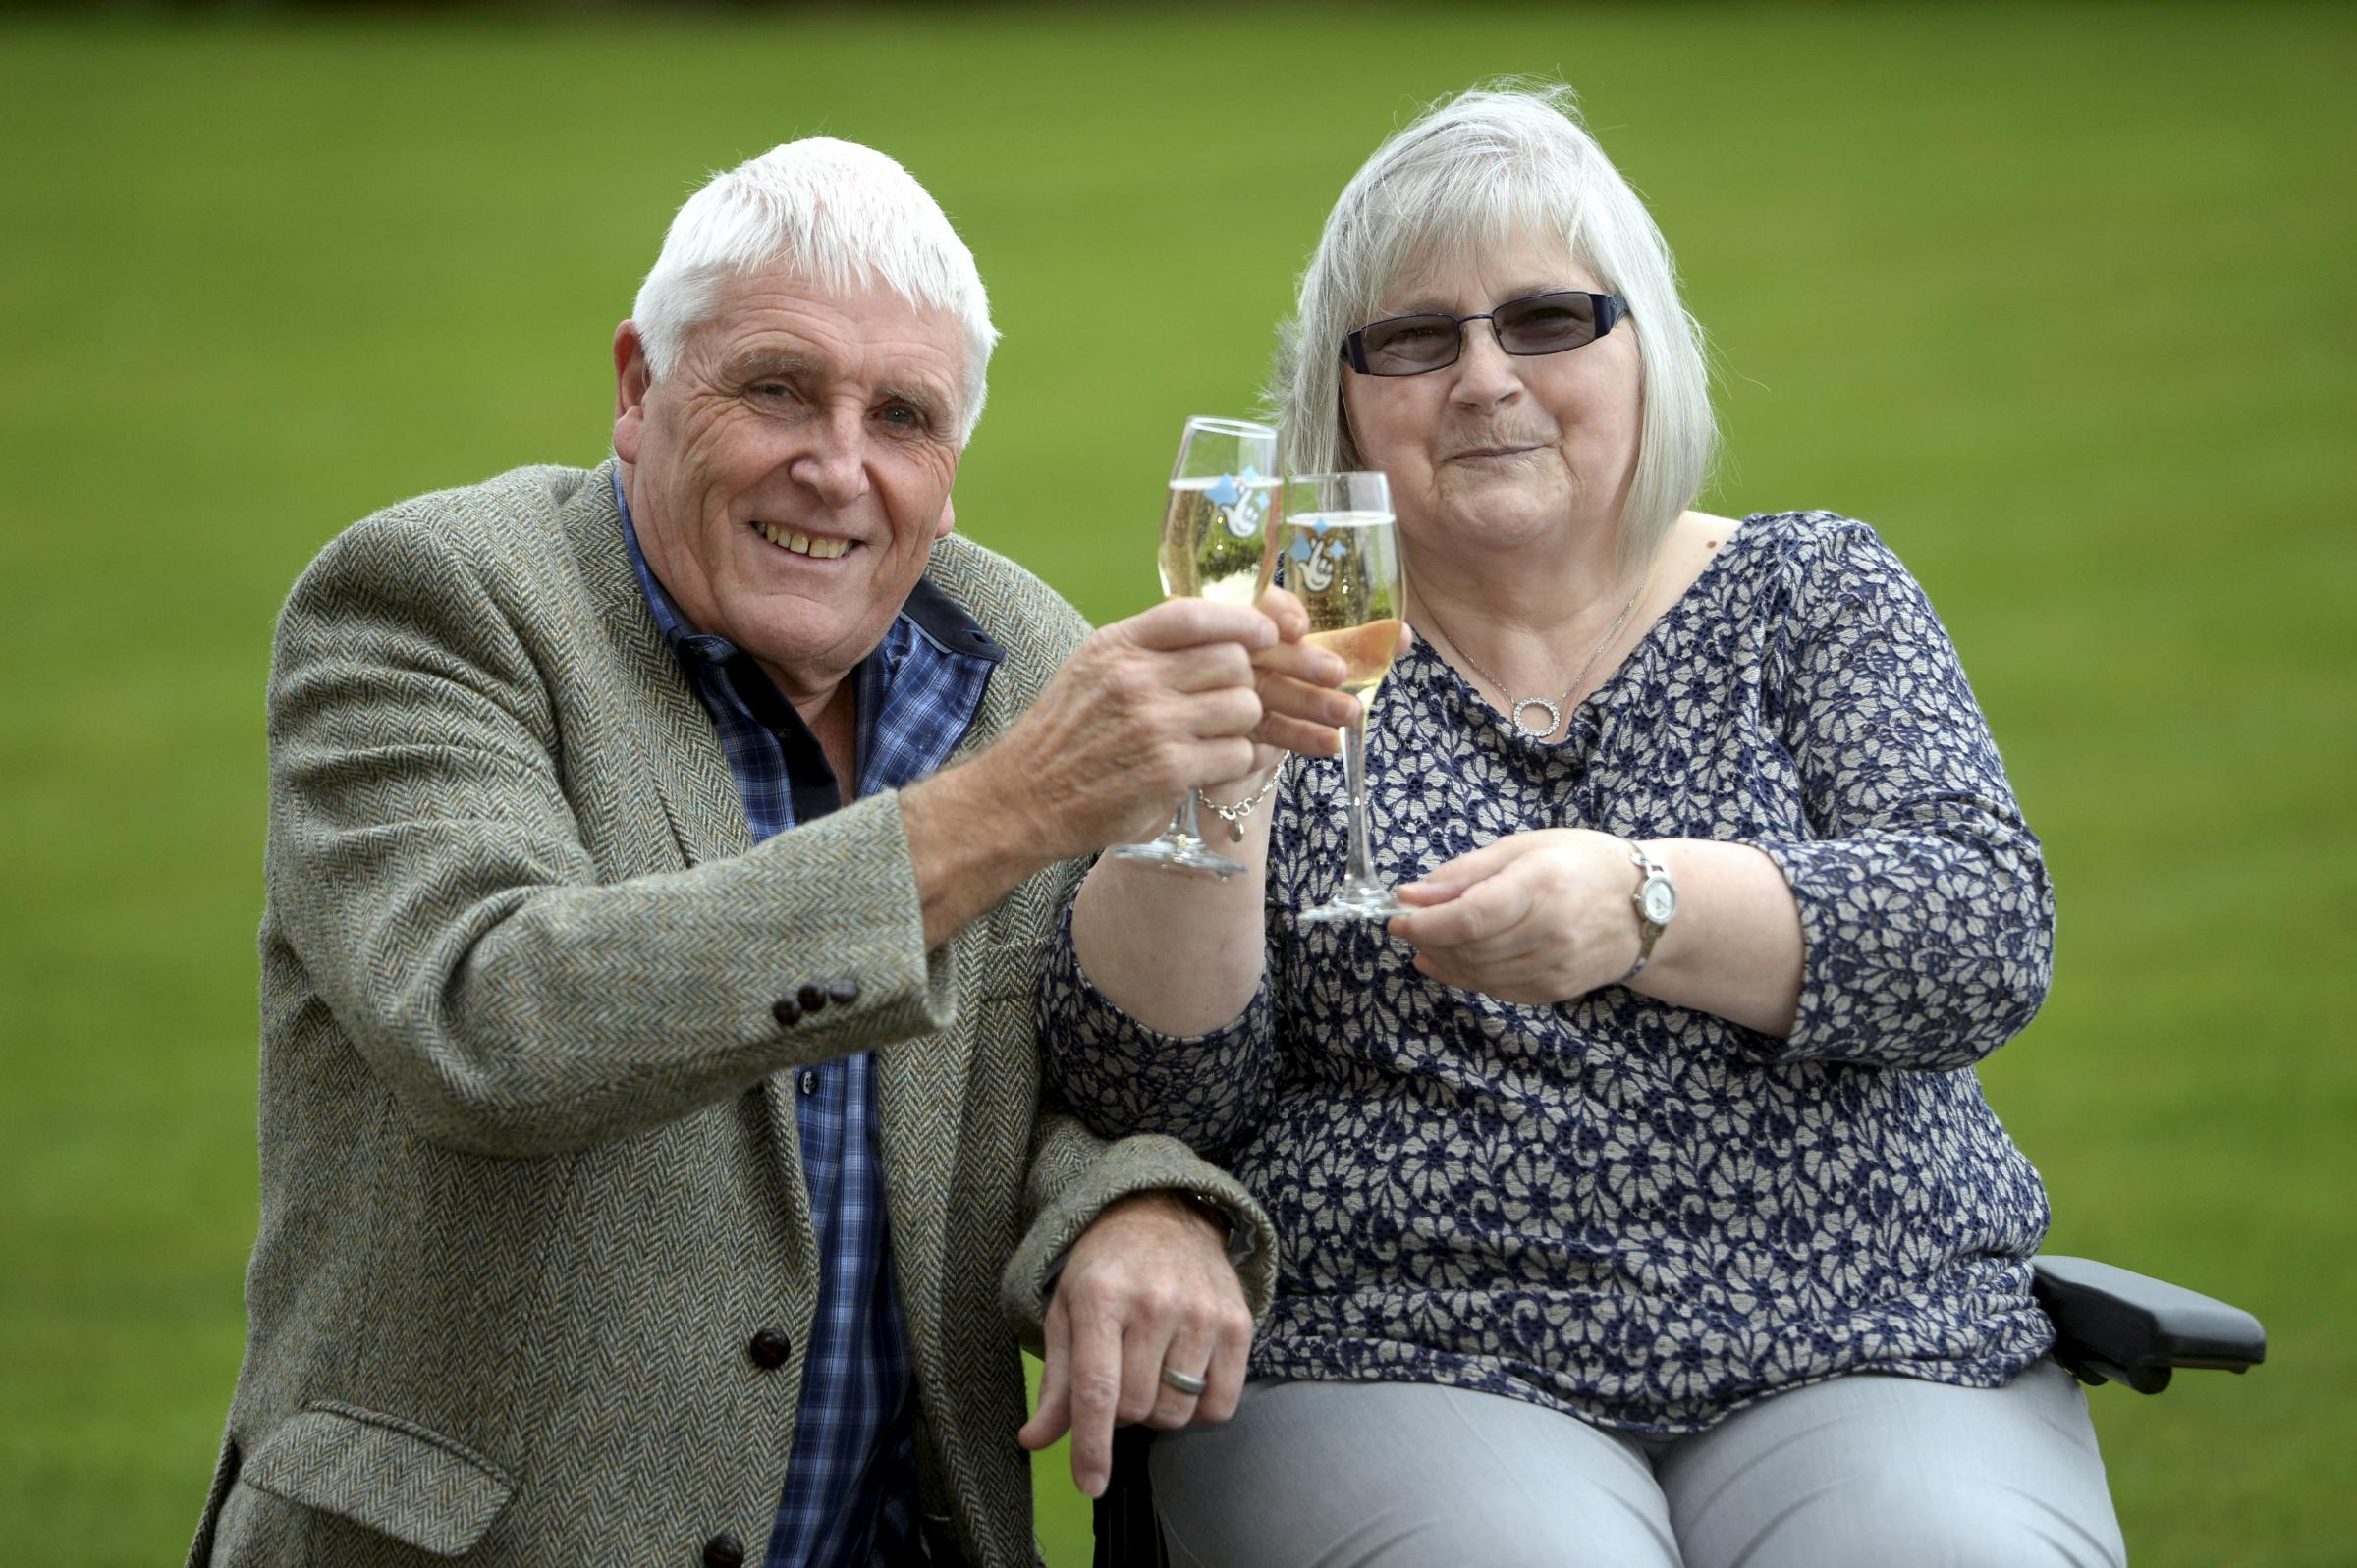 Tommy and Linda Parker from Port Seton, East Lothian, have won a massive £5,014,254 on the October 18 2017 Lotto draw. Their ticket matched five numbers plus the bonus ball. October 24 2017.